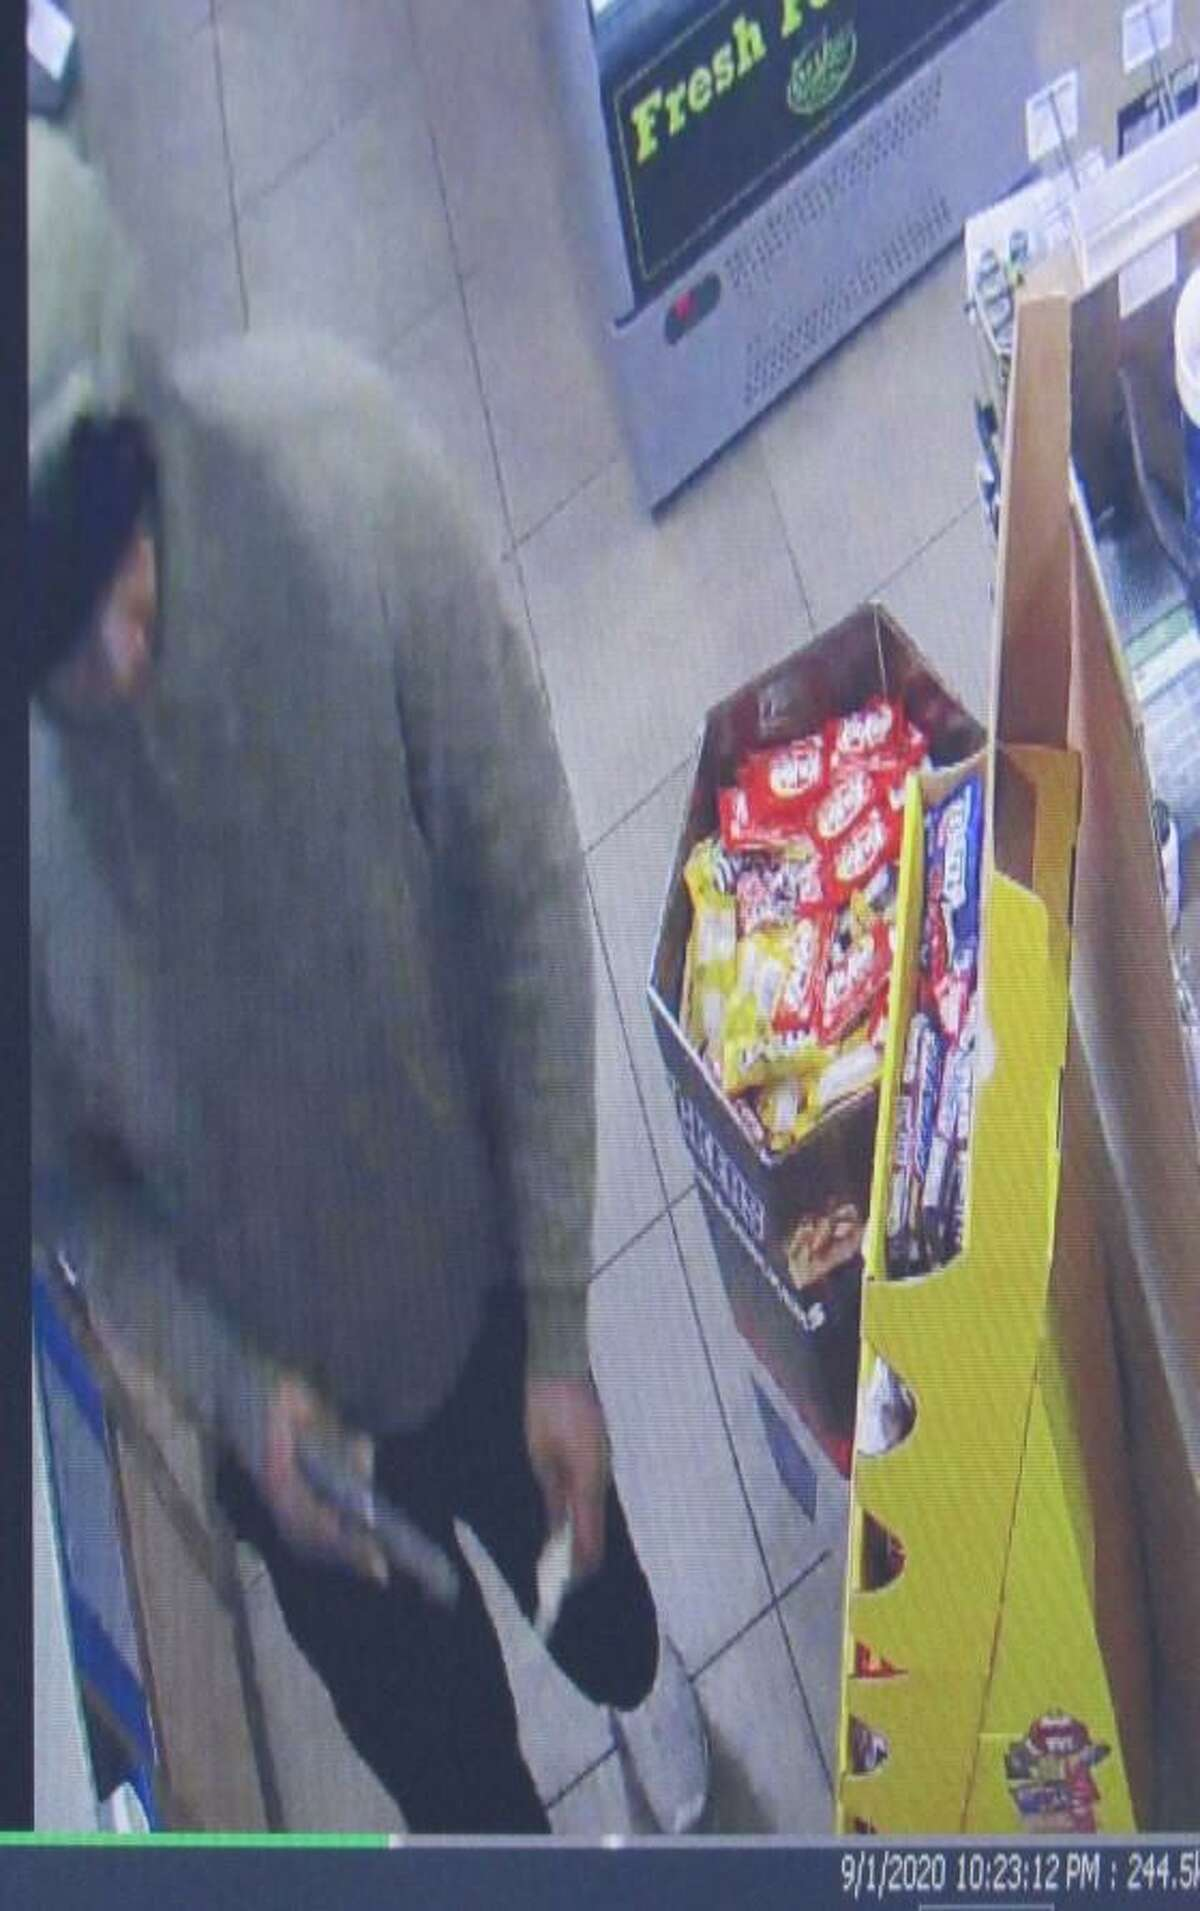 This surveillance camera still shows the robbery of the Murphy USA on Sept. 1, 2020.